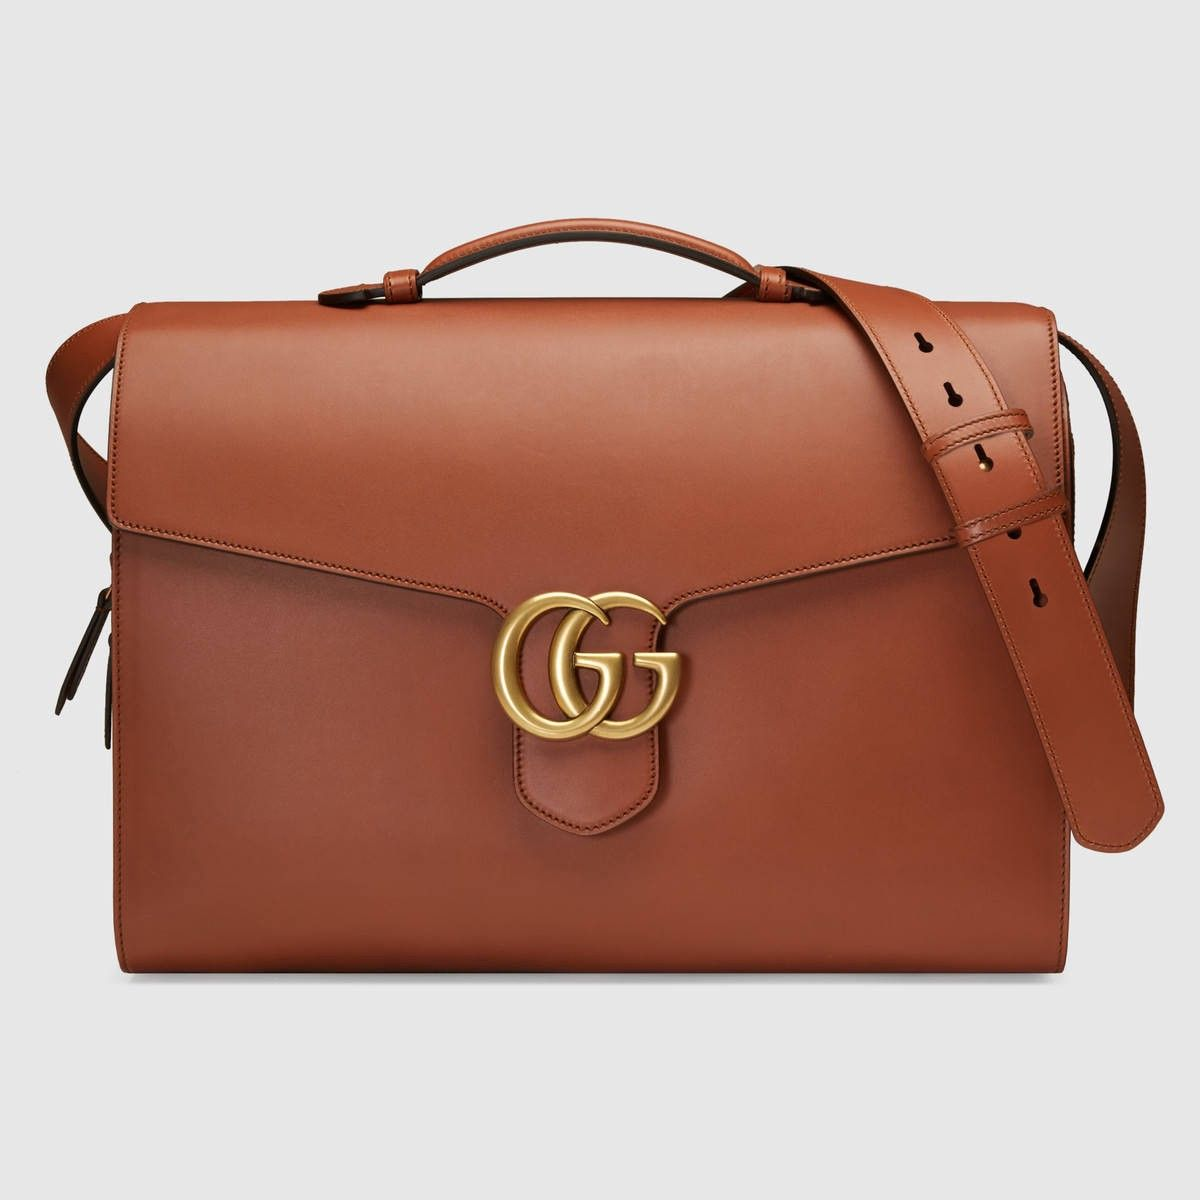 da21044a3ea4 GUCCI Gg Marmont Leather Briefcase - Cuir Leather. #gucci #bags #leather  #lining #accessories #shoulder bags #phone case #hand bags #cotton #